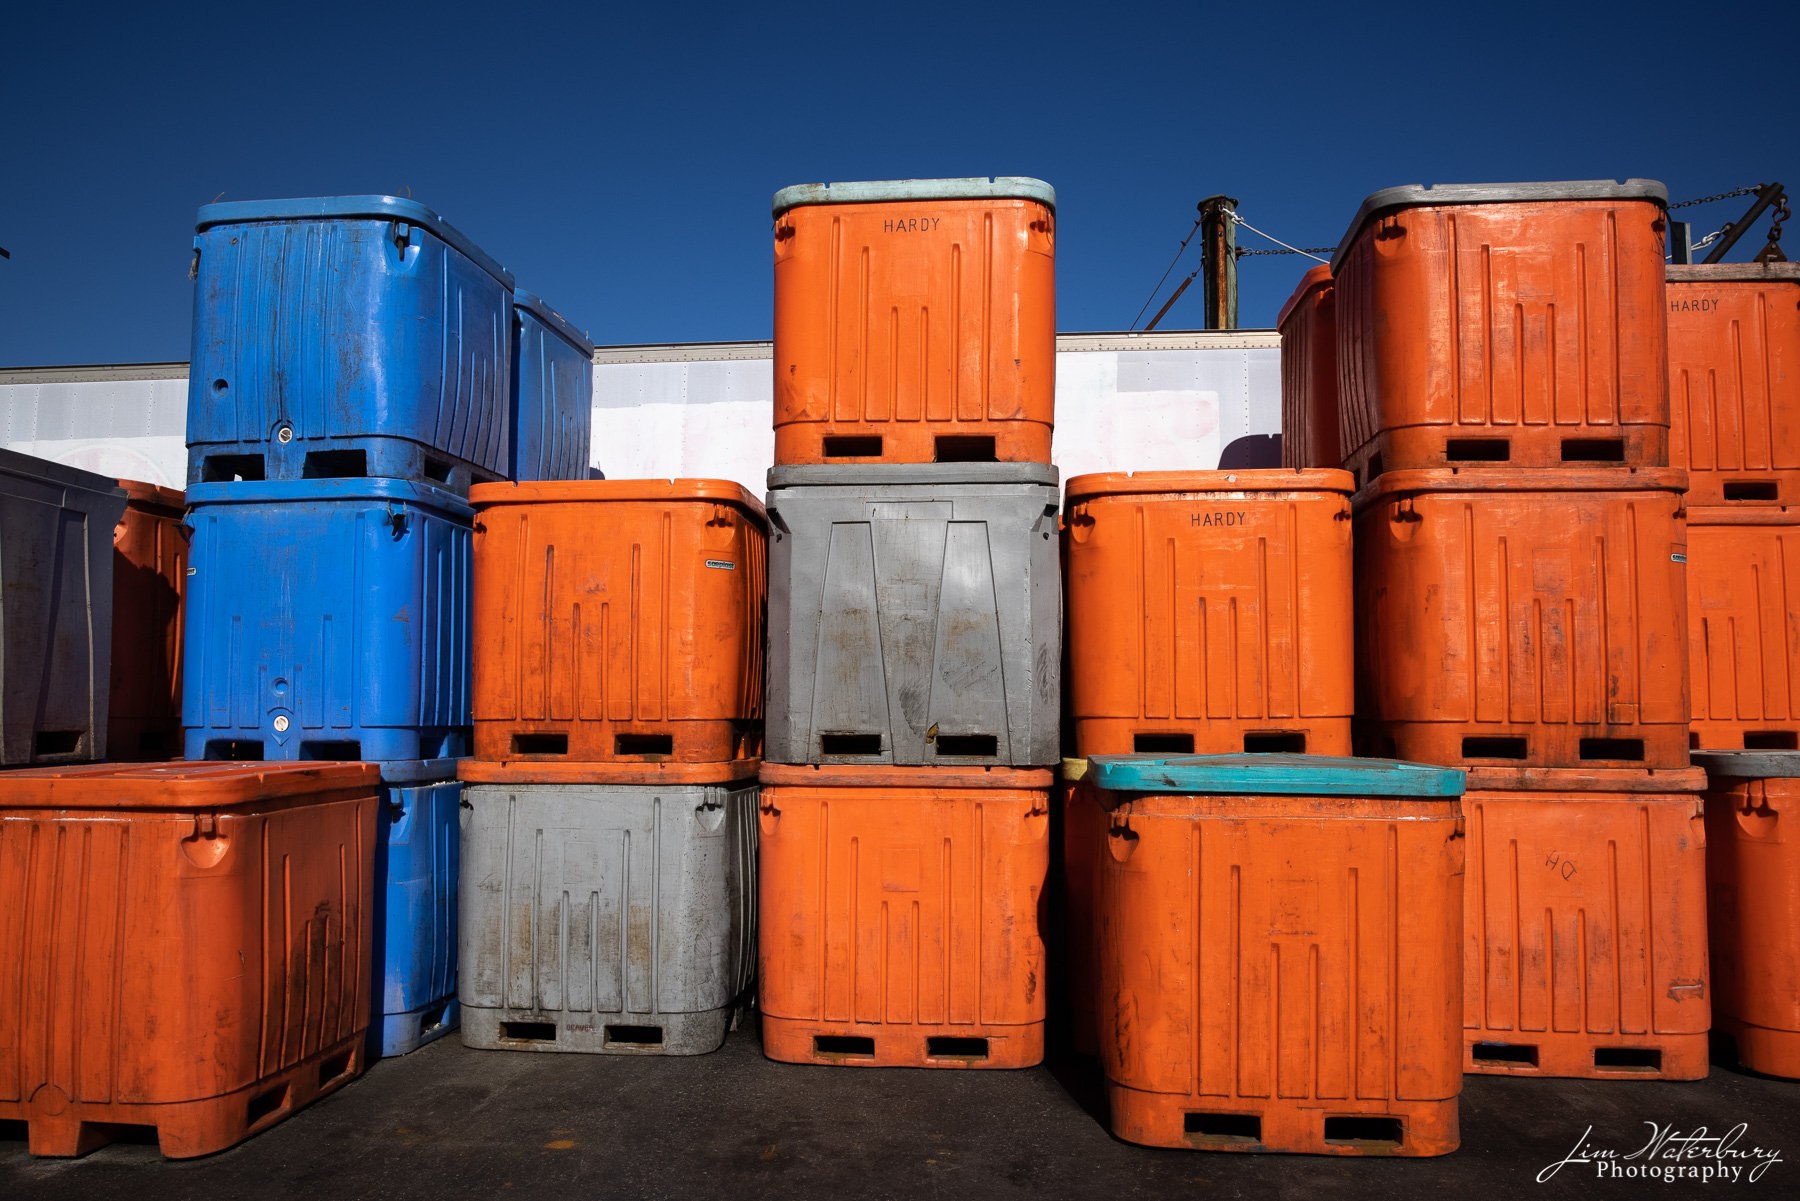 Brightly colored orange and blue storage containers on the dock at the port in Stonington, Maine.